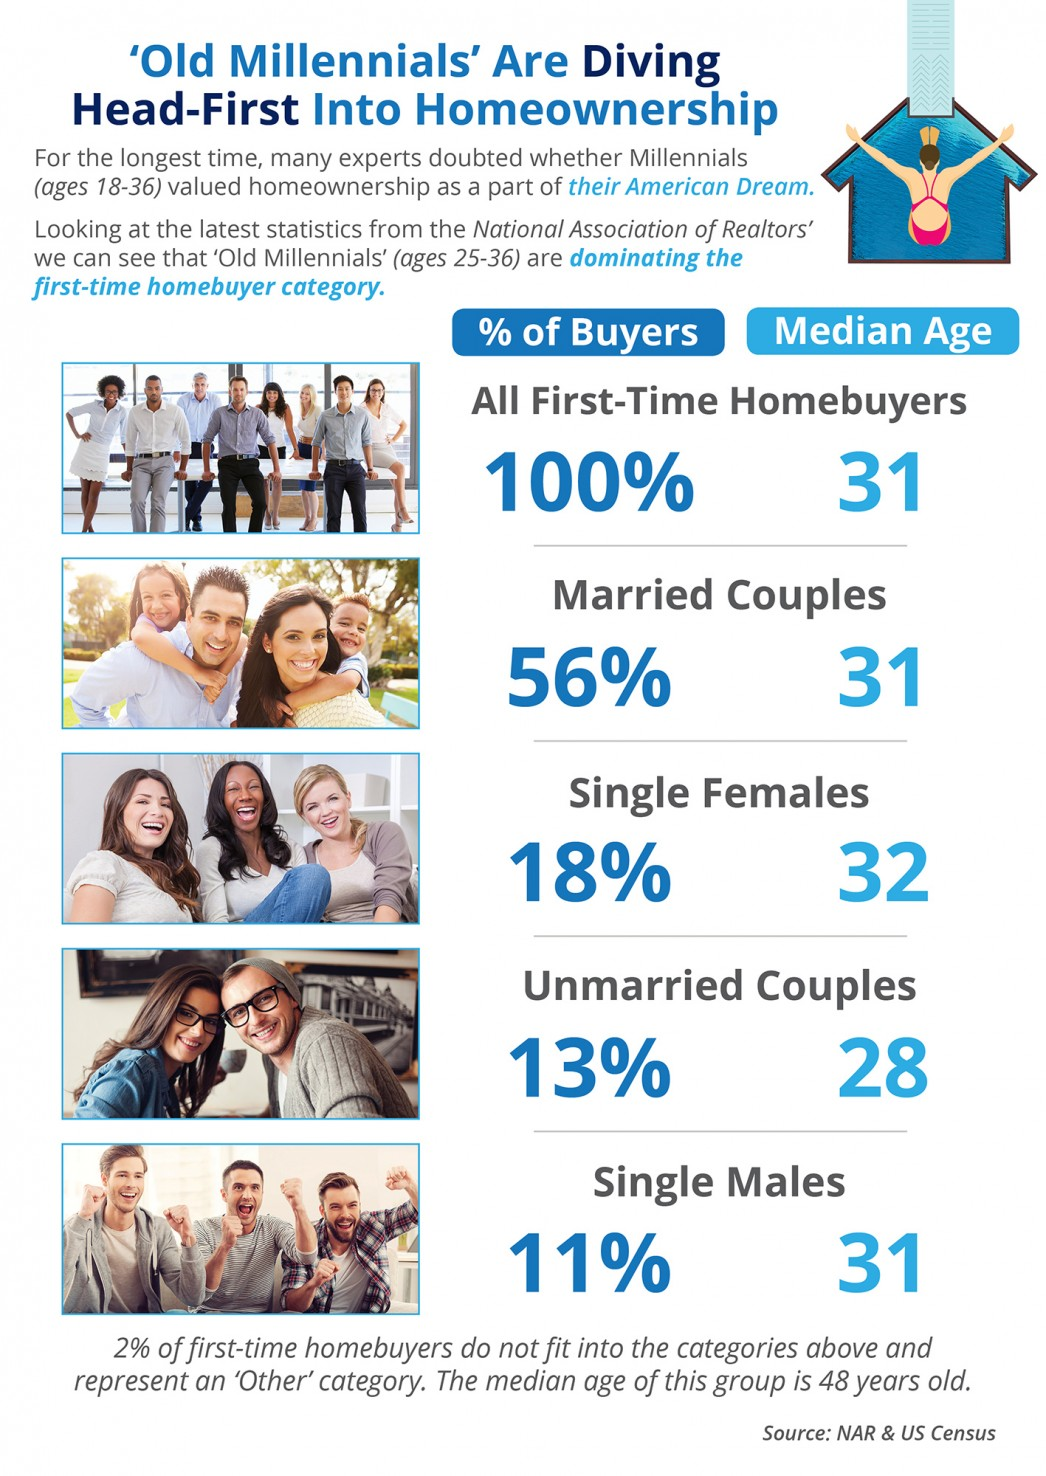 'Old Millennials' Are Diving Head-First into Homeownership [INFOGRAPHIC] | MyKCM